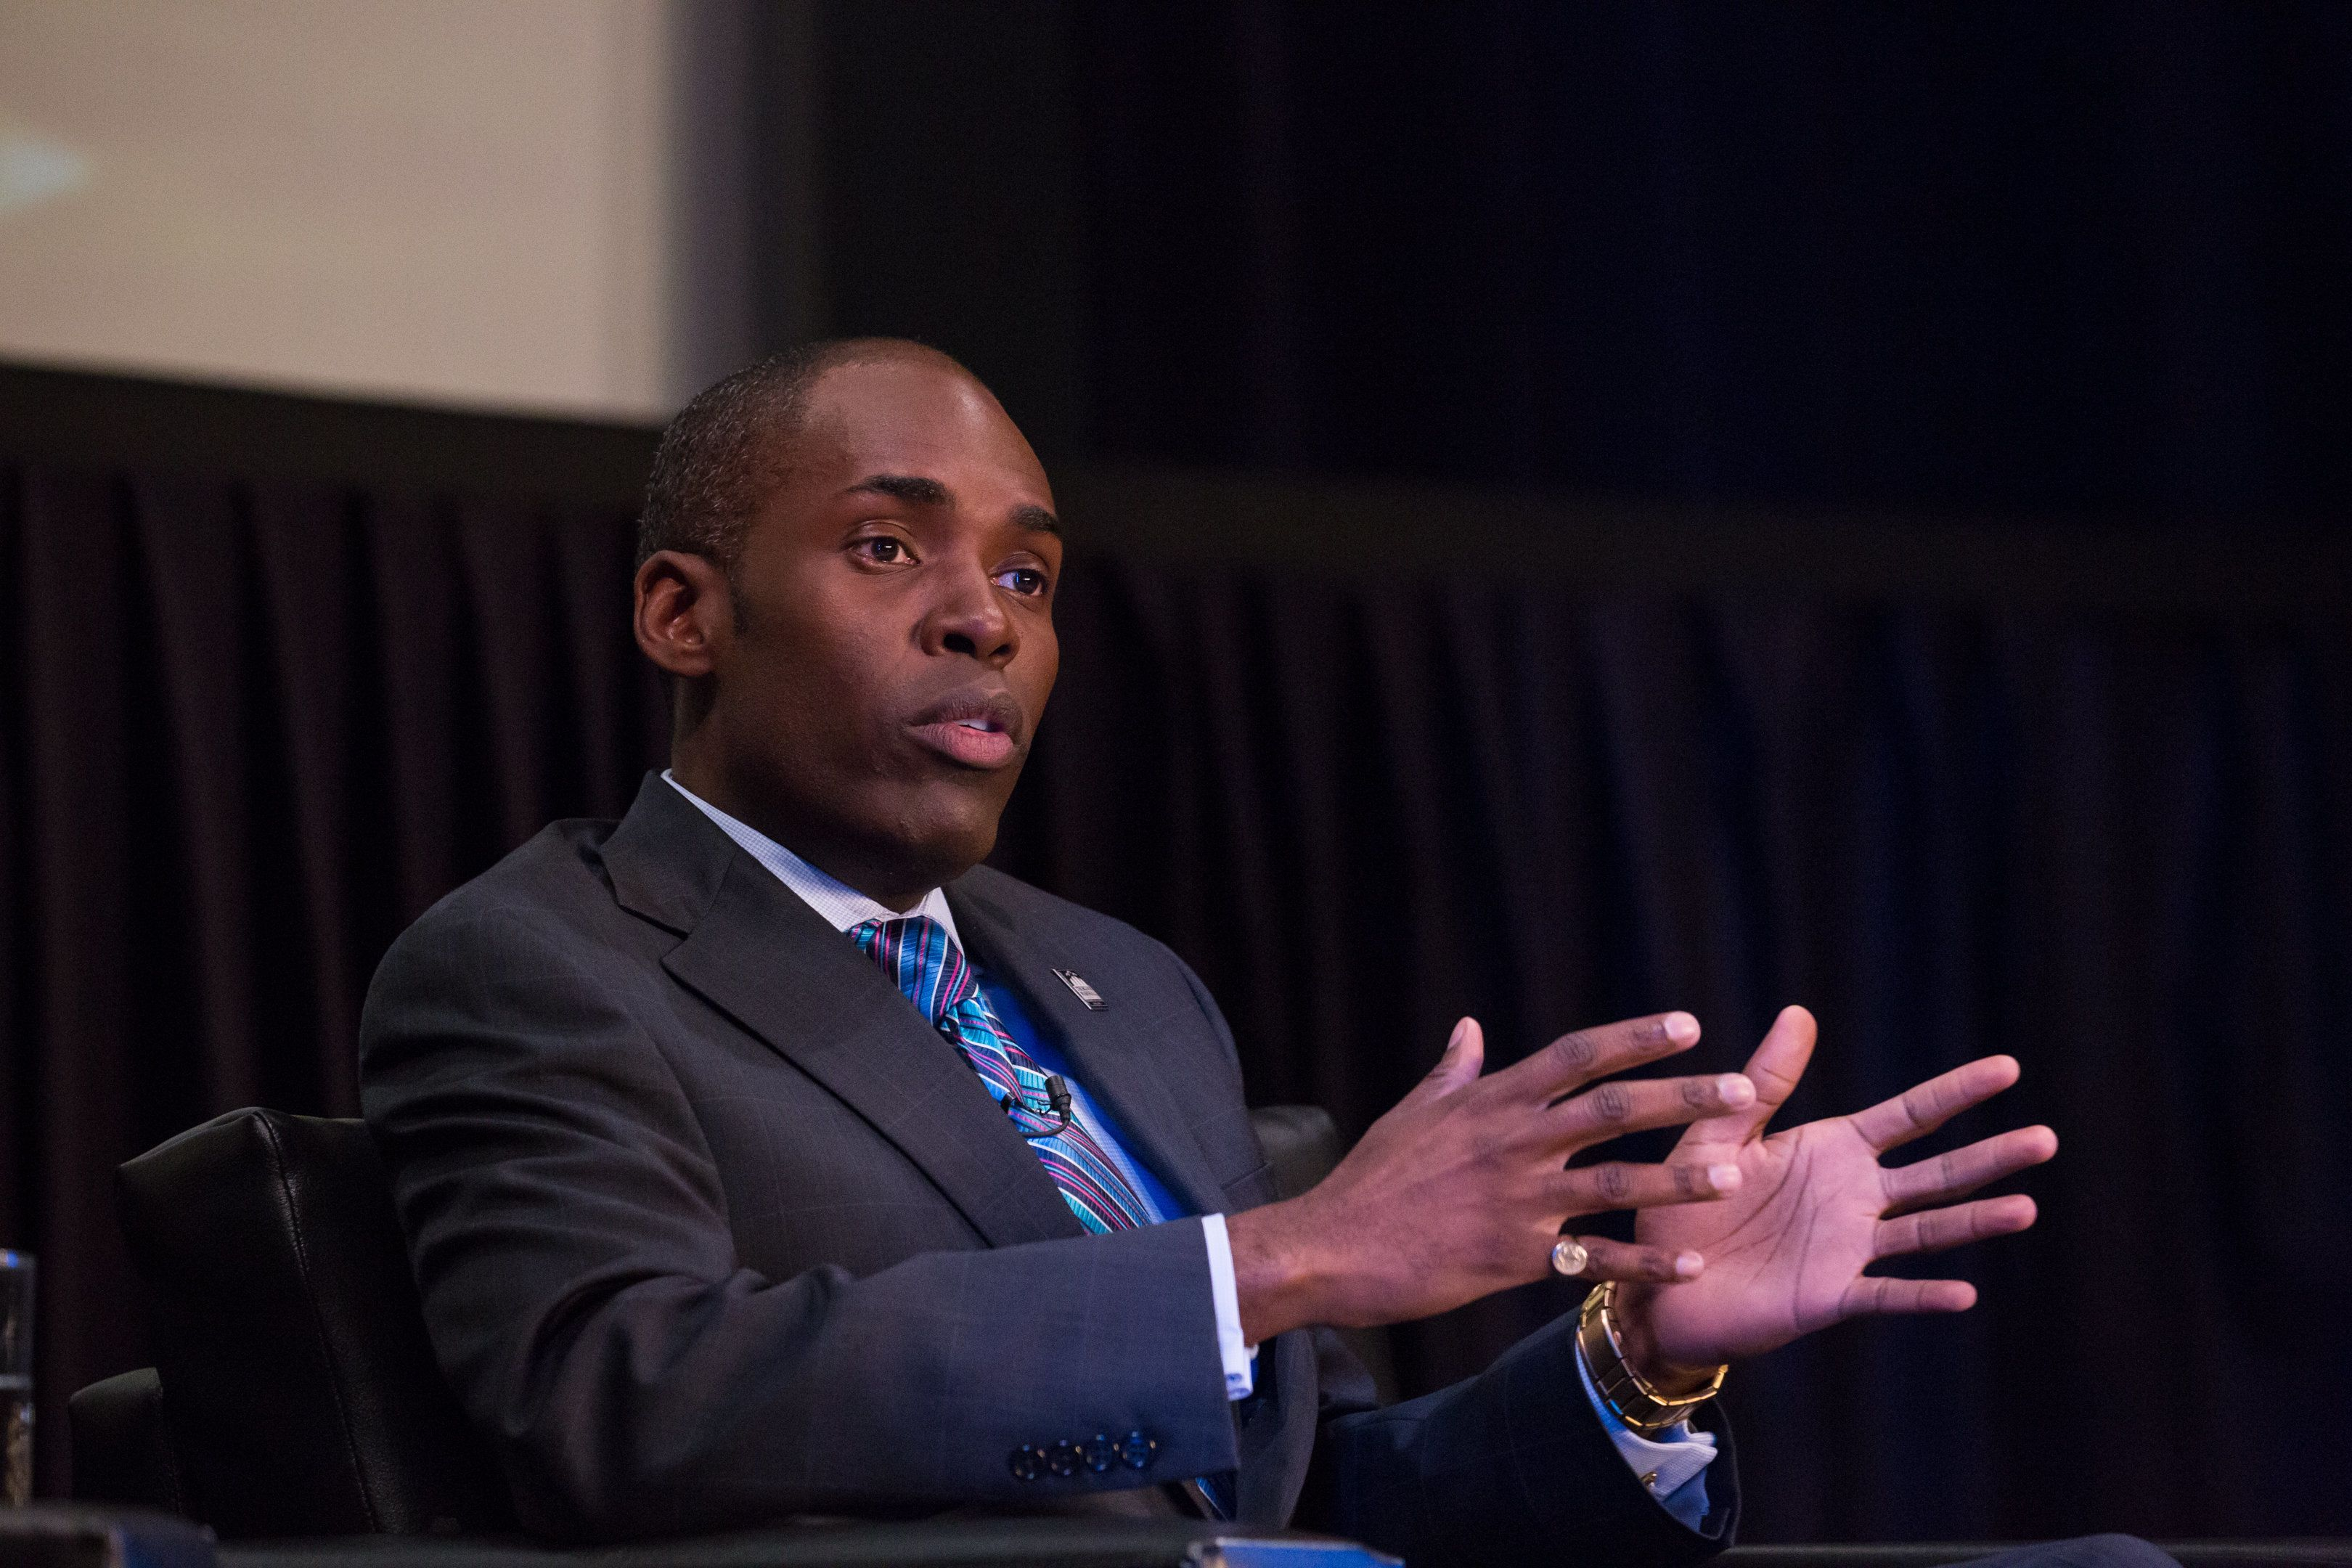 Paris Dennard, GOP commentator, sits on a panel for The State of Black America town hall taping, at the Howard Theatre on May 3, 2017 in Washington, DC.  (Photo by Cheriss May/NurPhoto via Getty Images)